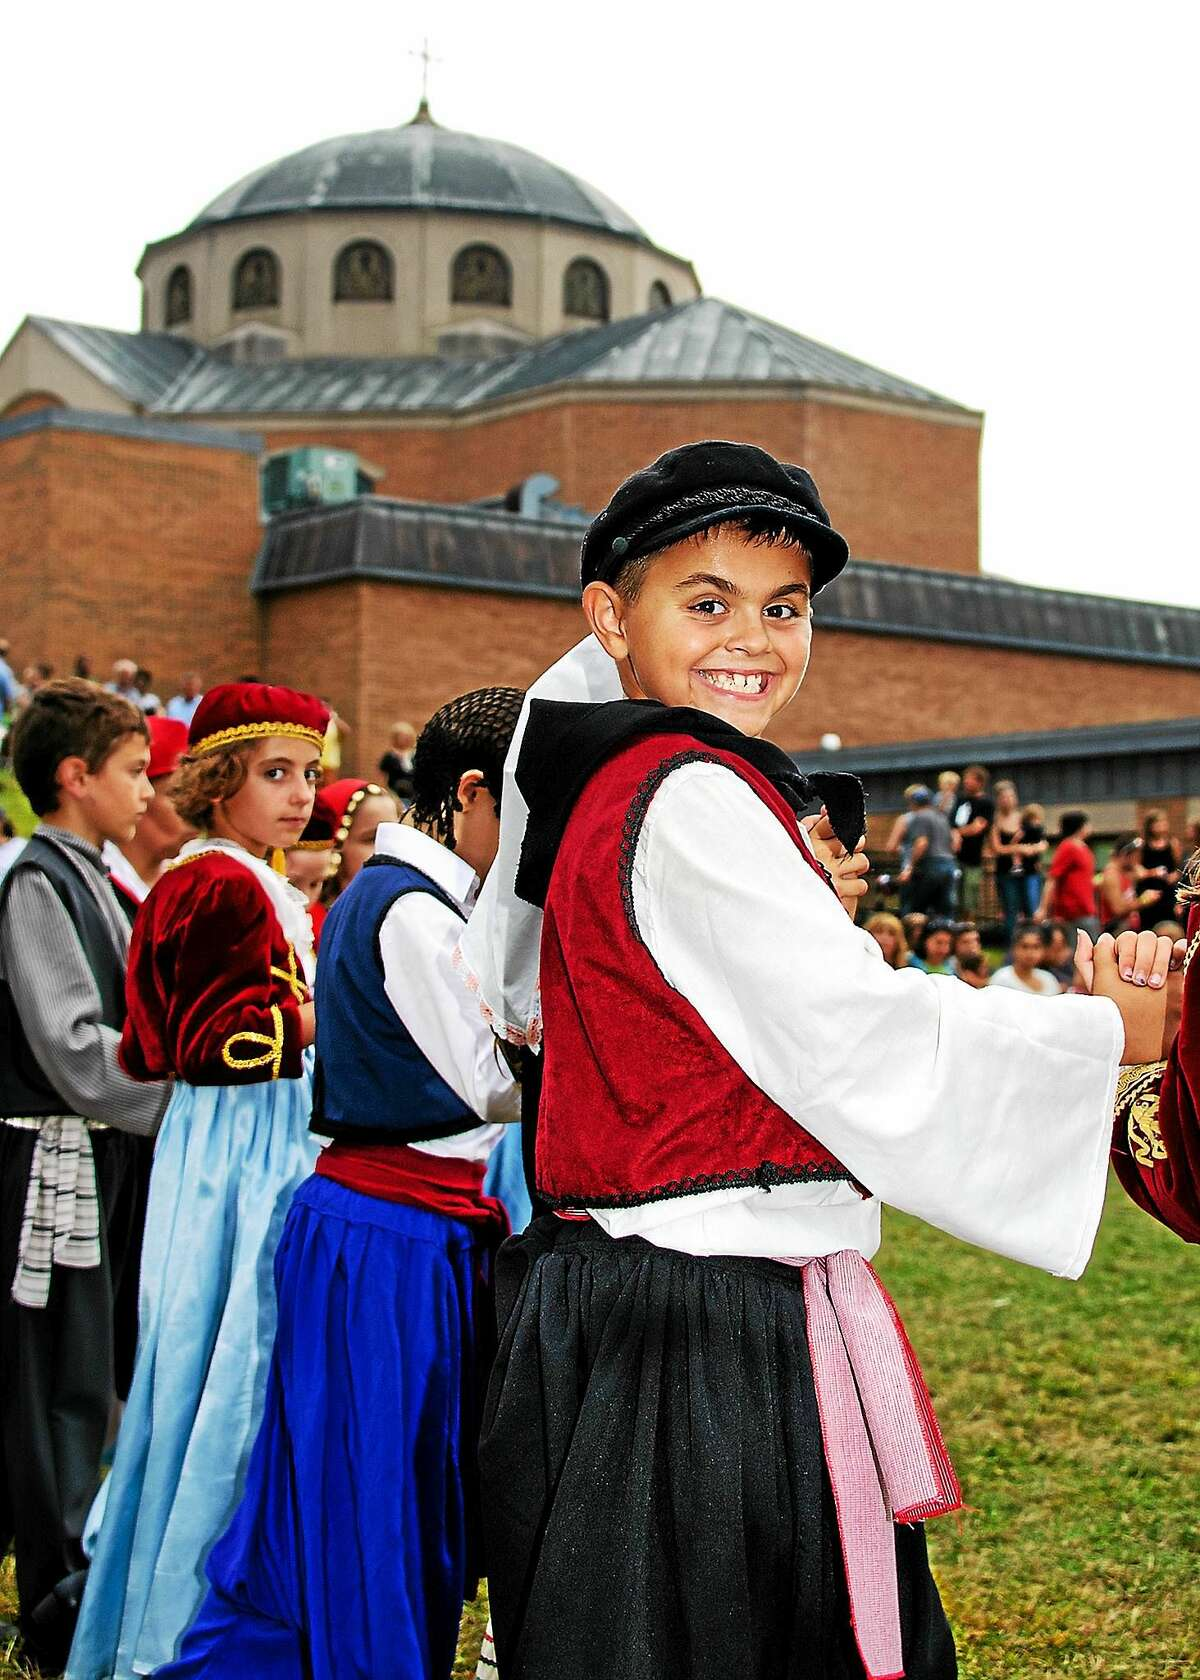 Photo: Patric Marchitto Odyssey Dancer Dino Spanolios of Bethany flashes a smile during a Greek dance performance at Odyssey 2014. Also picturedare Nicholas Kokenos of Shelton, left, Sofia Sanfilippo of Orange and John Dalakas (partially obscured) of Woodbridge. The troupe will perform several times daily at this yearís festival.